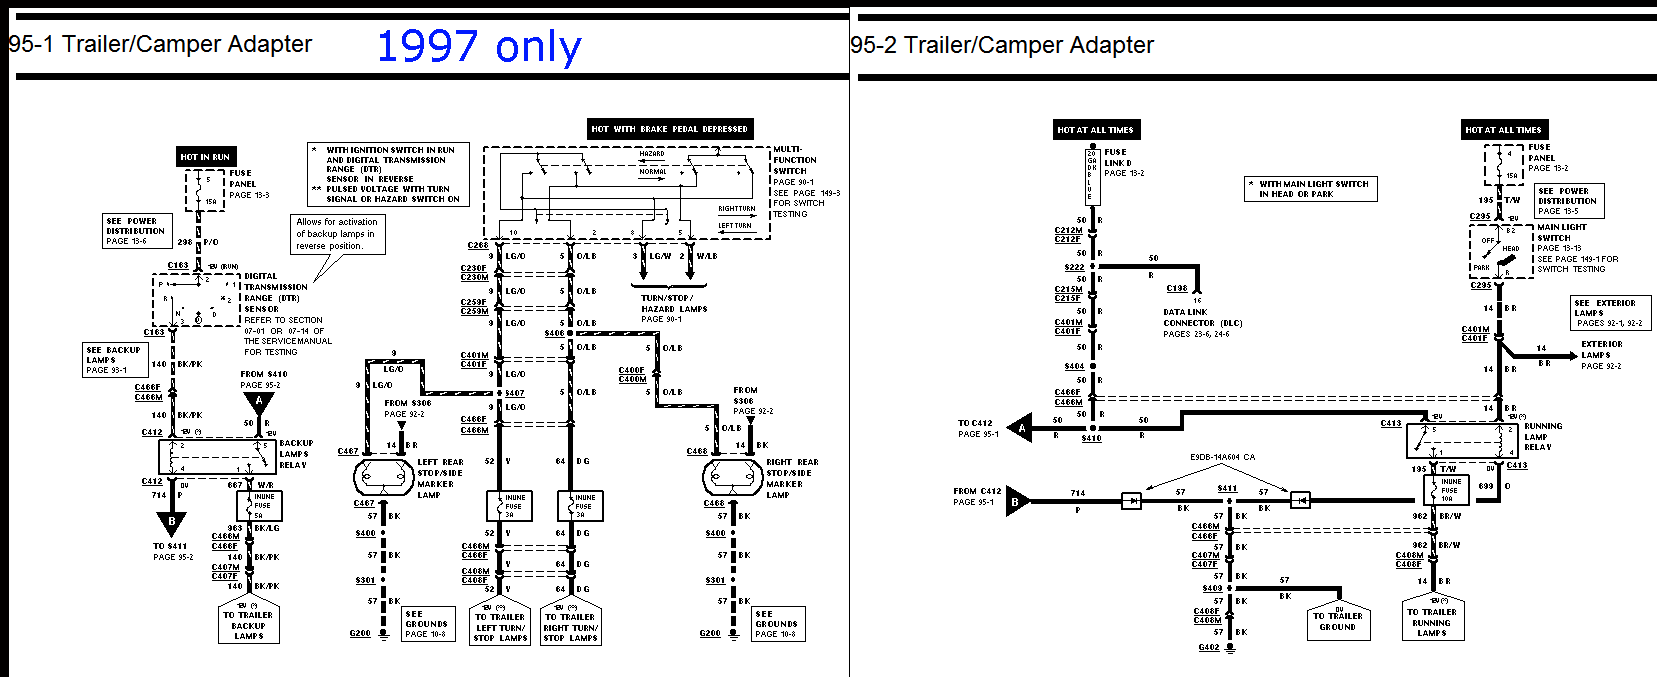 Wiring Diagram For 97 F150 Change Your Idea With Wire Flat Trailer Harness 1997 Ford F 350 Simple Rh 10 Terranut Store